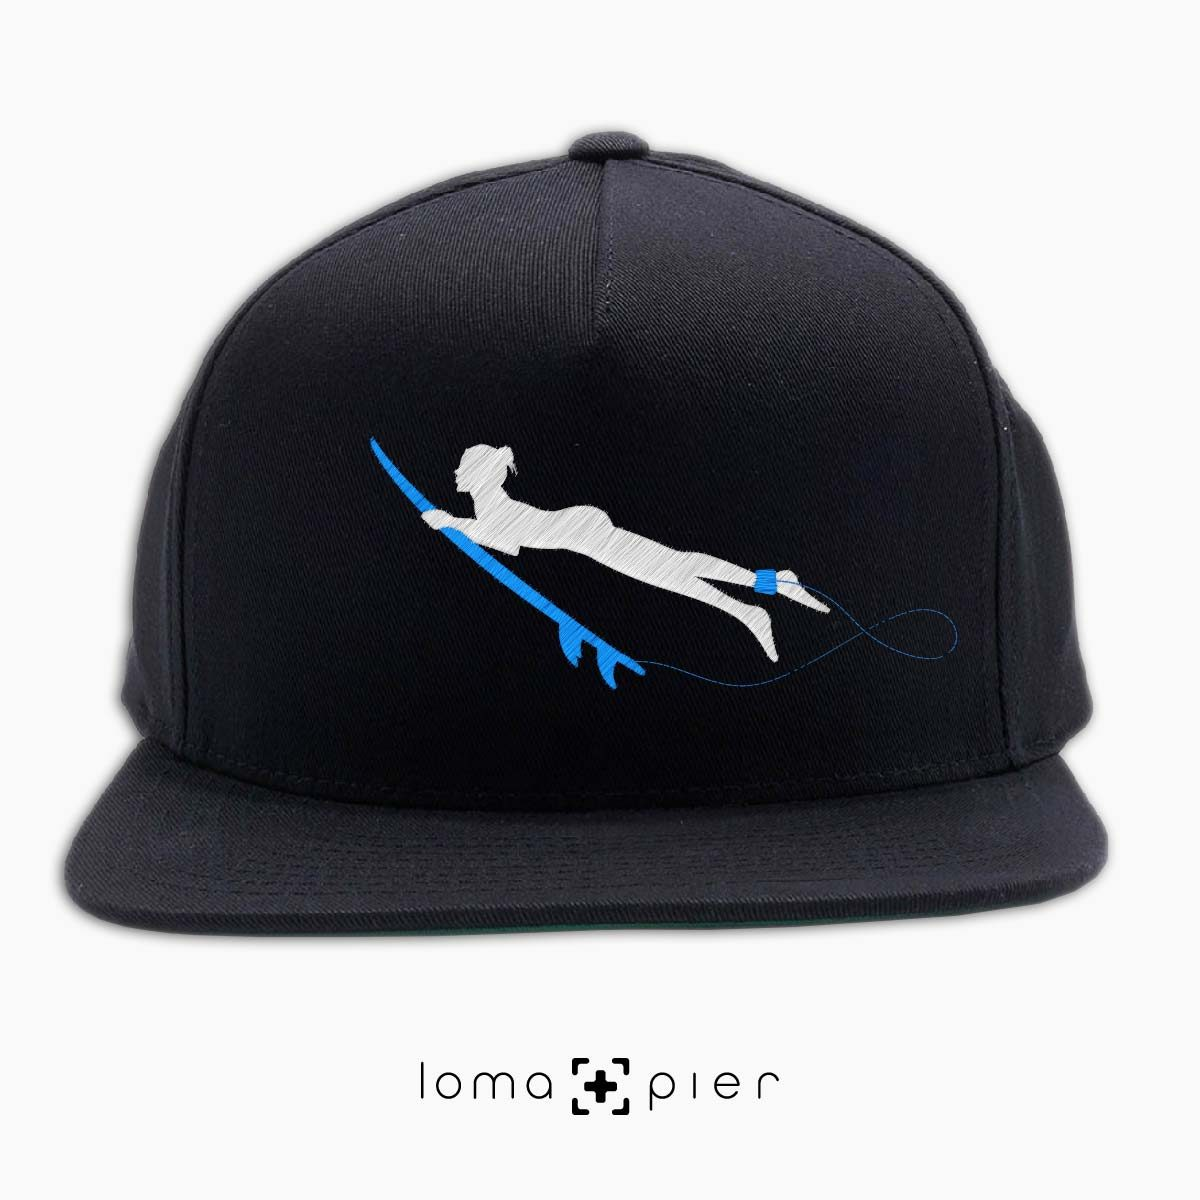 SURFING NAKED nude beach hat in black by loma+pier hat store